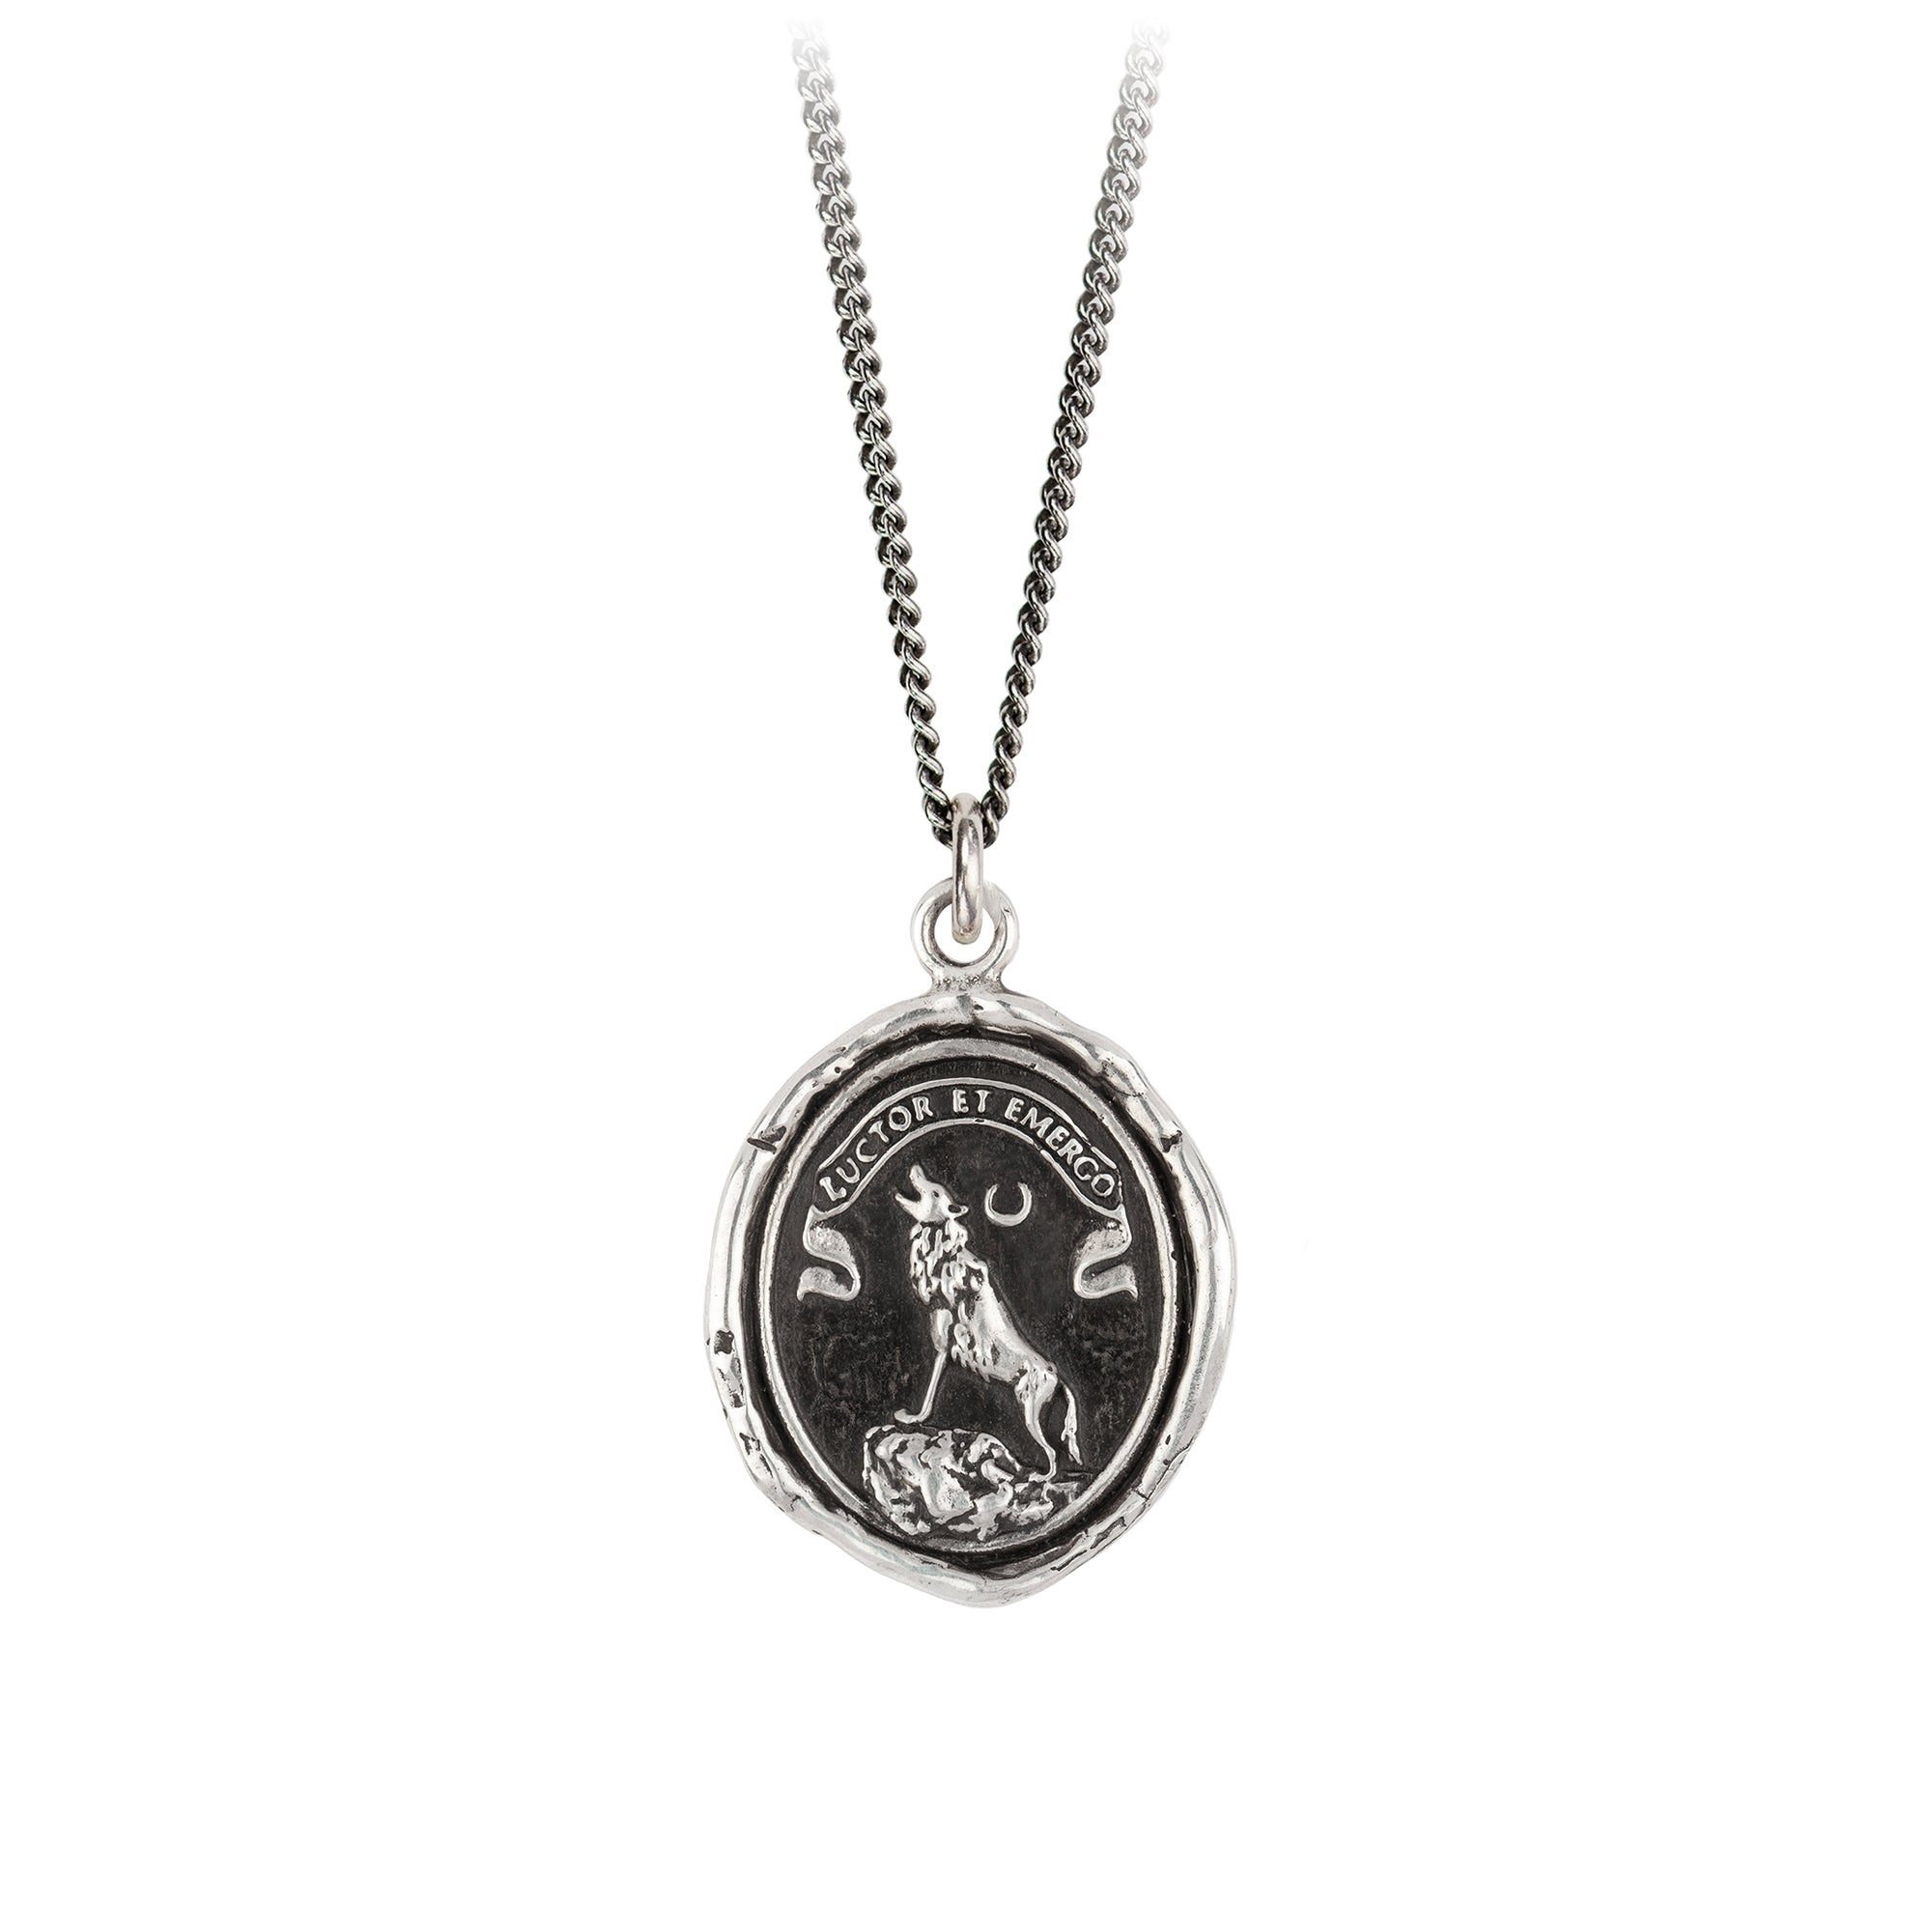 Pyrrha Struggle and Emerge Talisman Necklace Silver